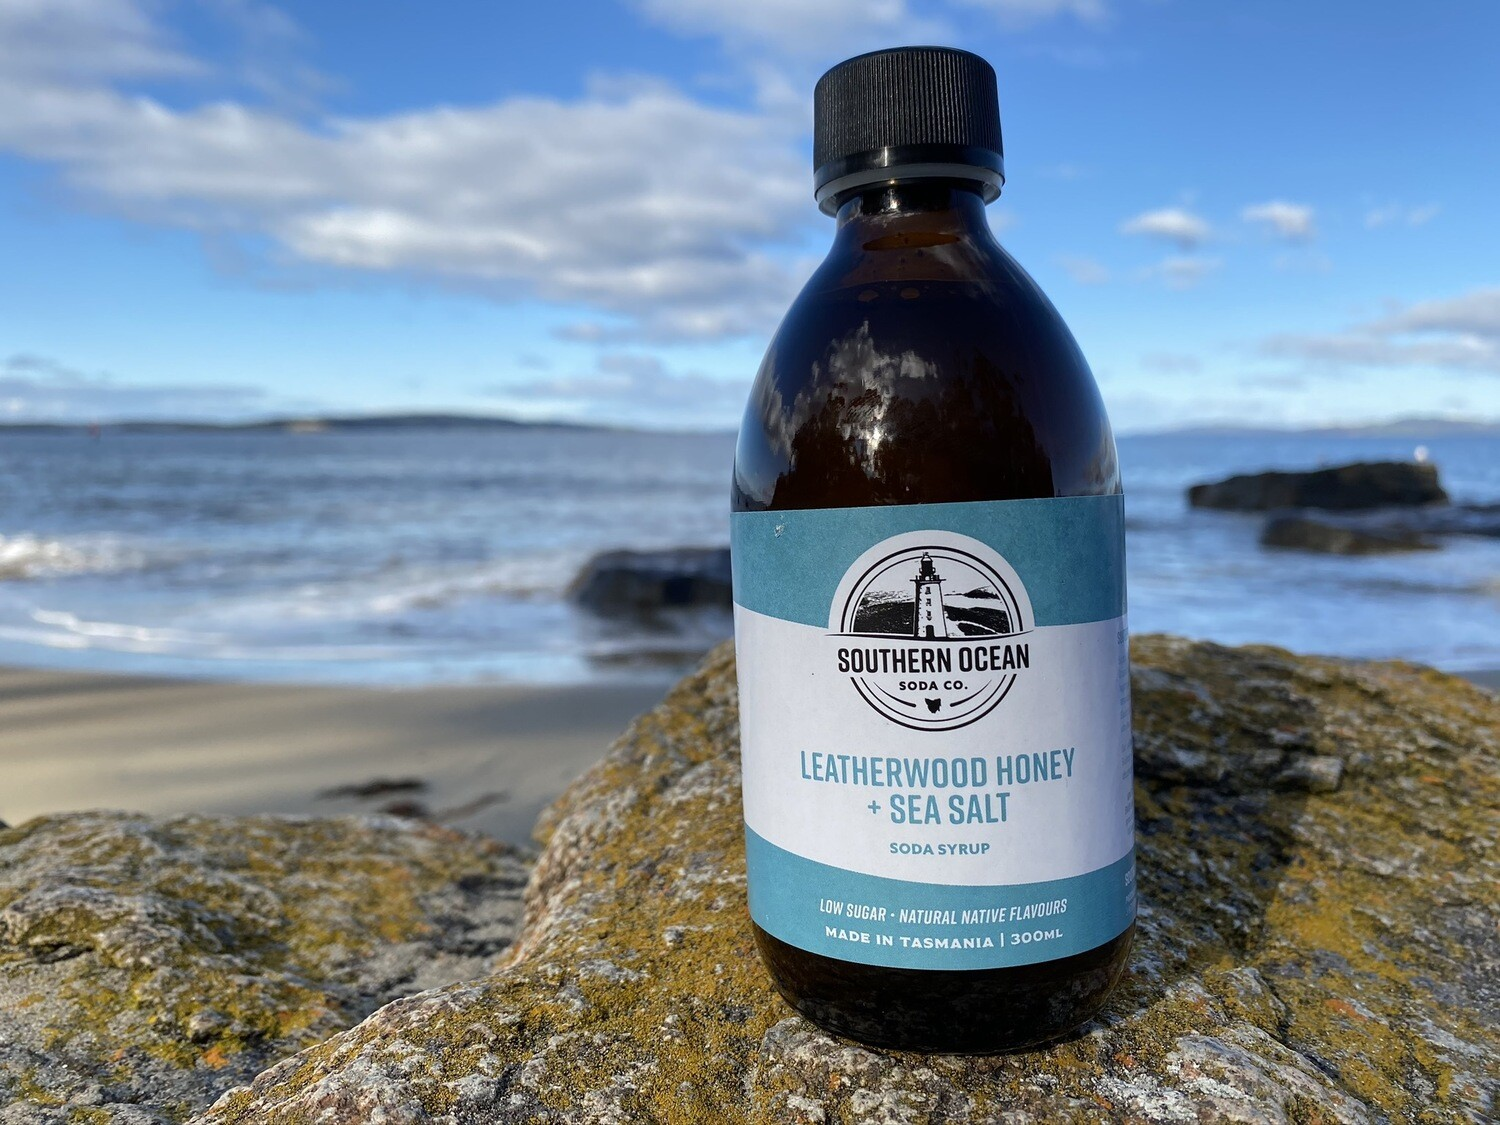 Leatherwood Honey and Sea Salt Soda Syrup